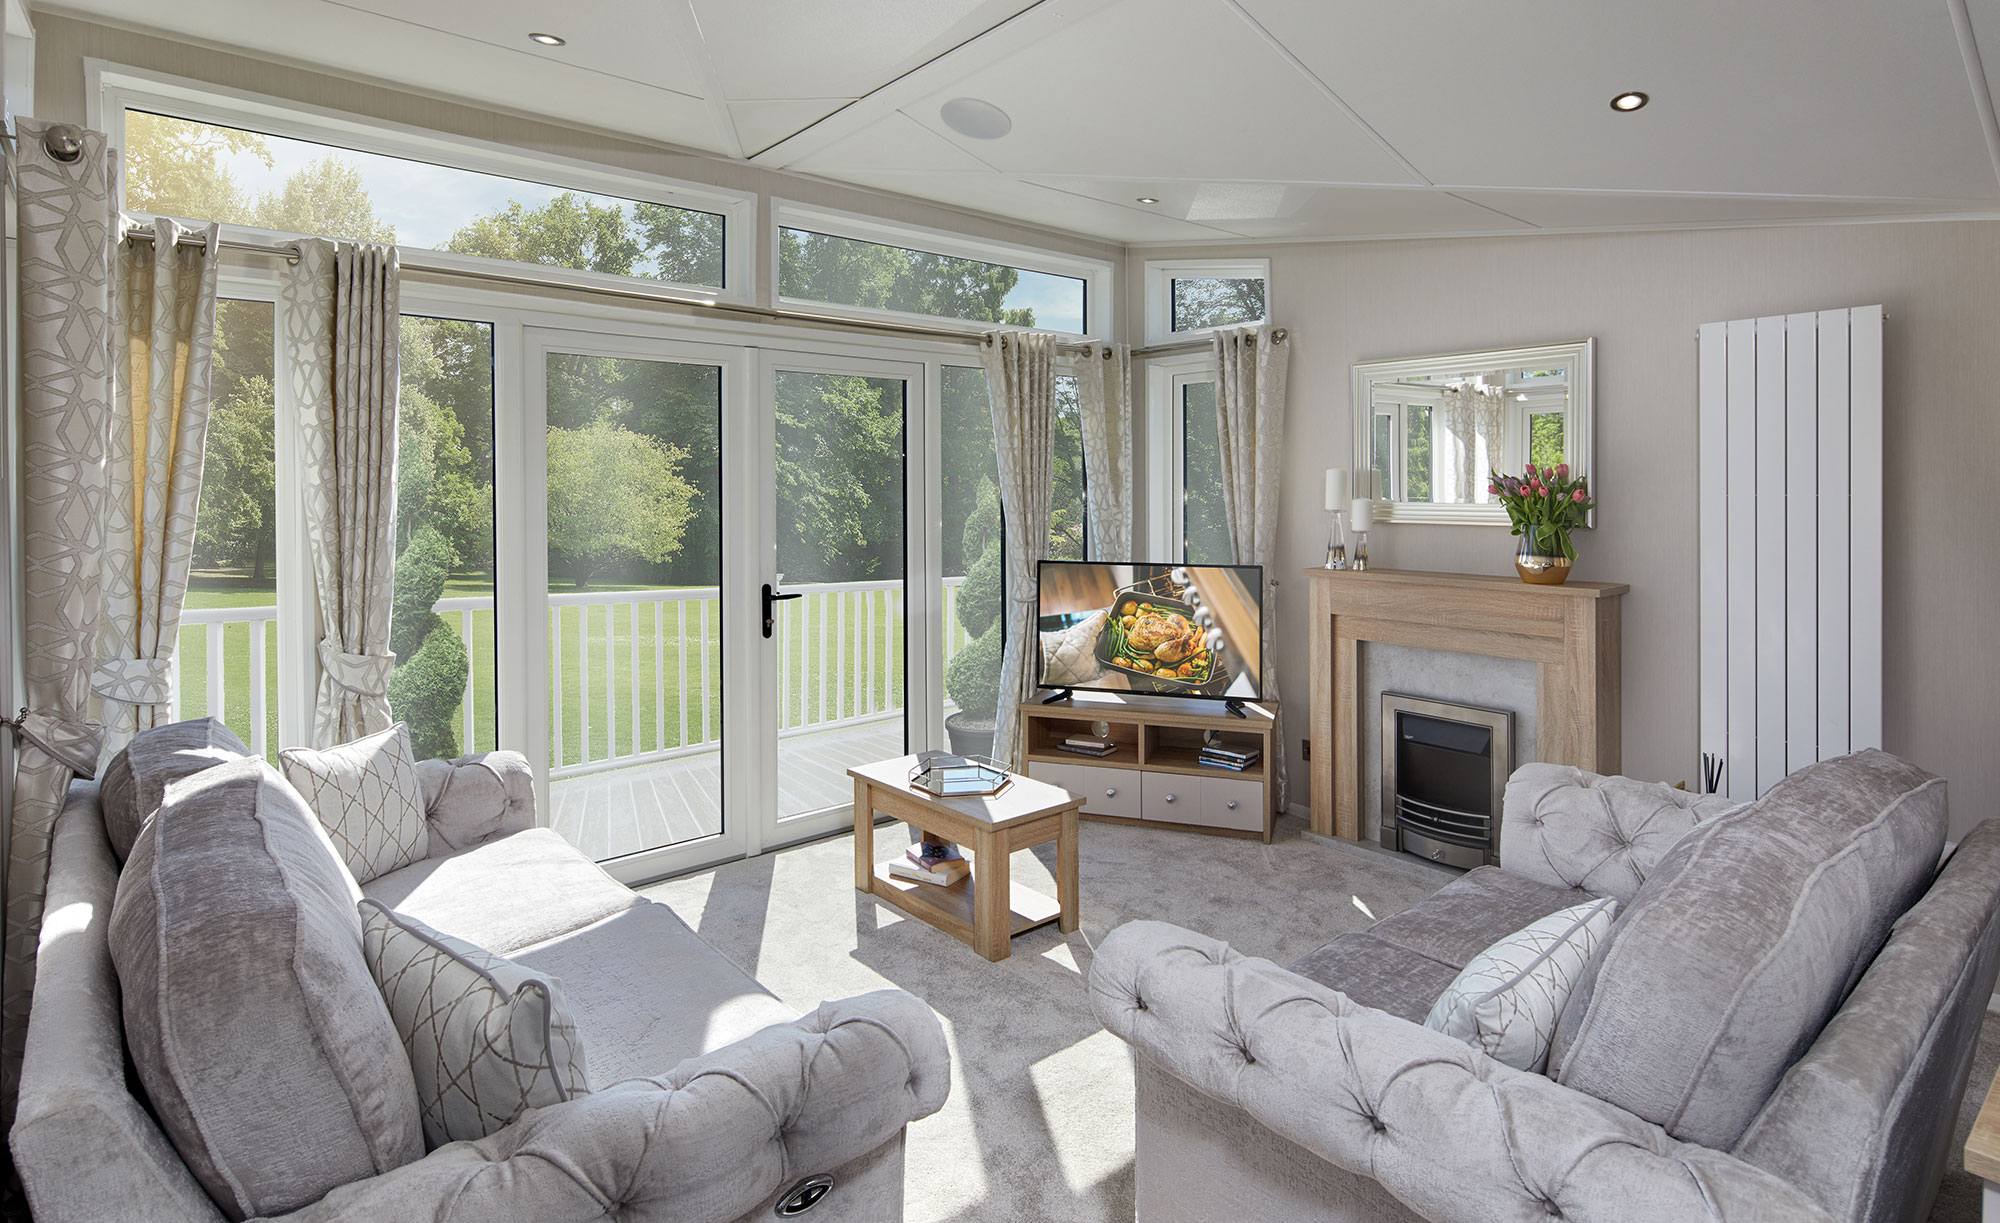 Interior shot of the lounge in the Willerby Vogue Classique